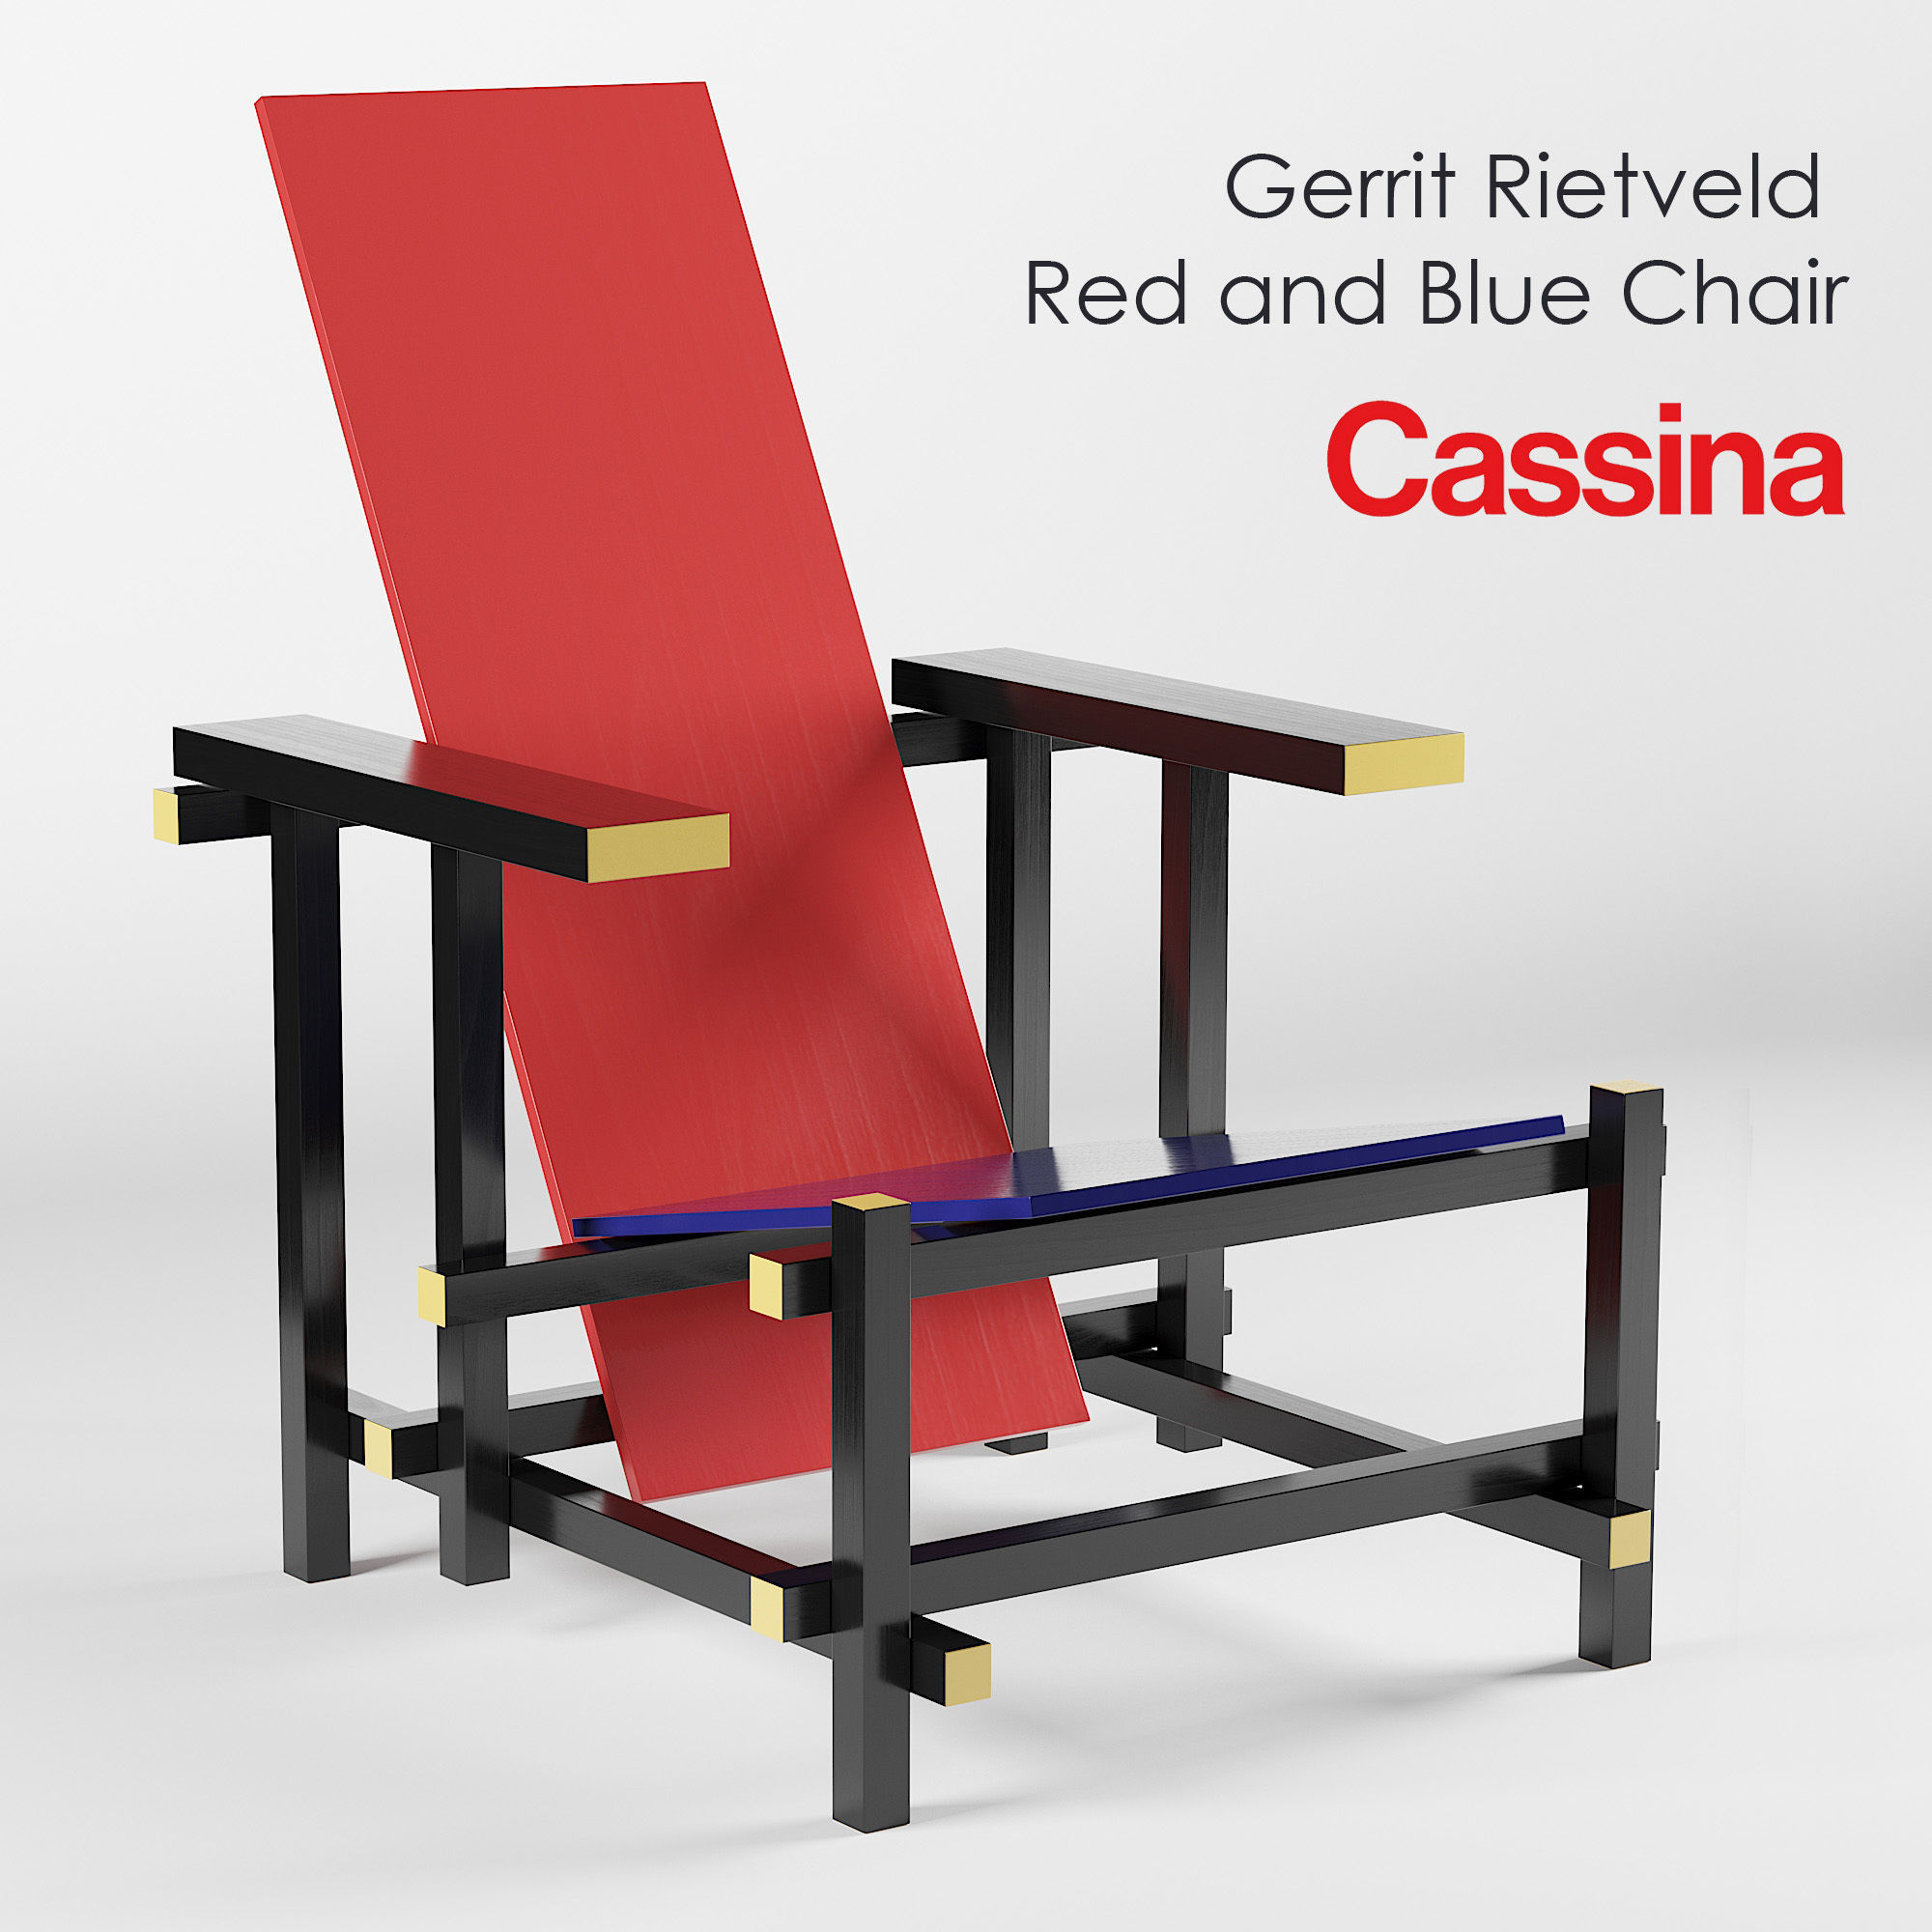 Cassina Gerrit Rietveld Red and Blue Chair 3D modelGerrit Rietveld Chair